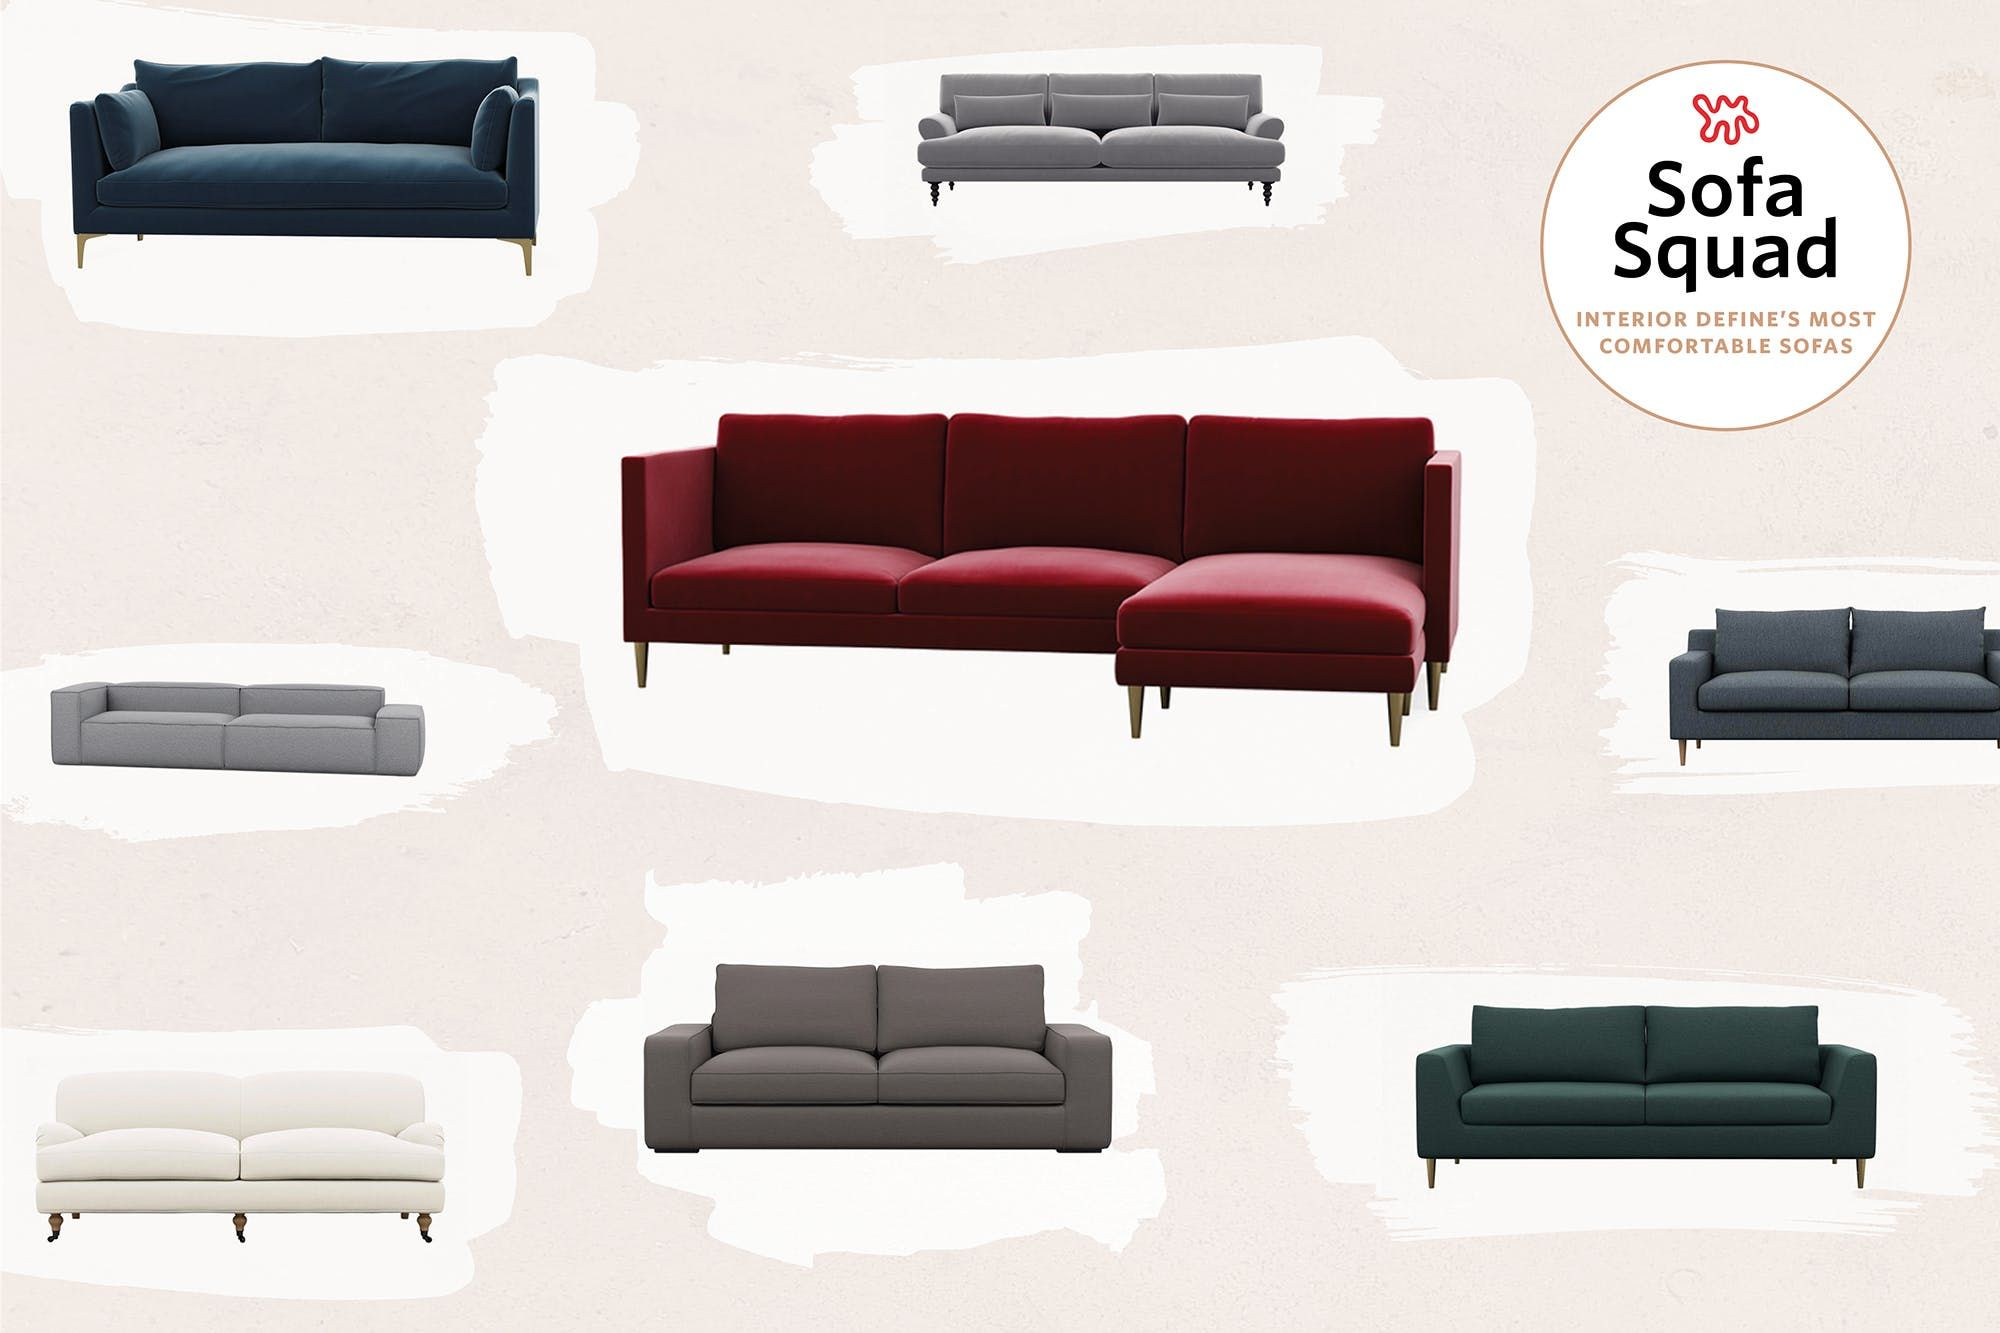 Reviewed: The Most Comfortable Sofas At Interior Define U2014 The Apartment  Therapy Sofa Squad